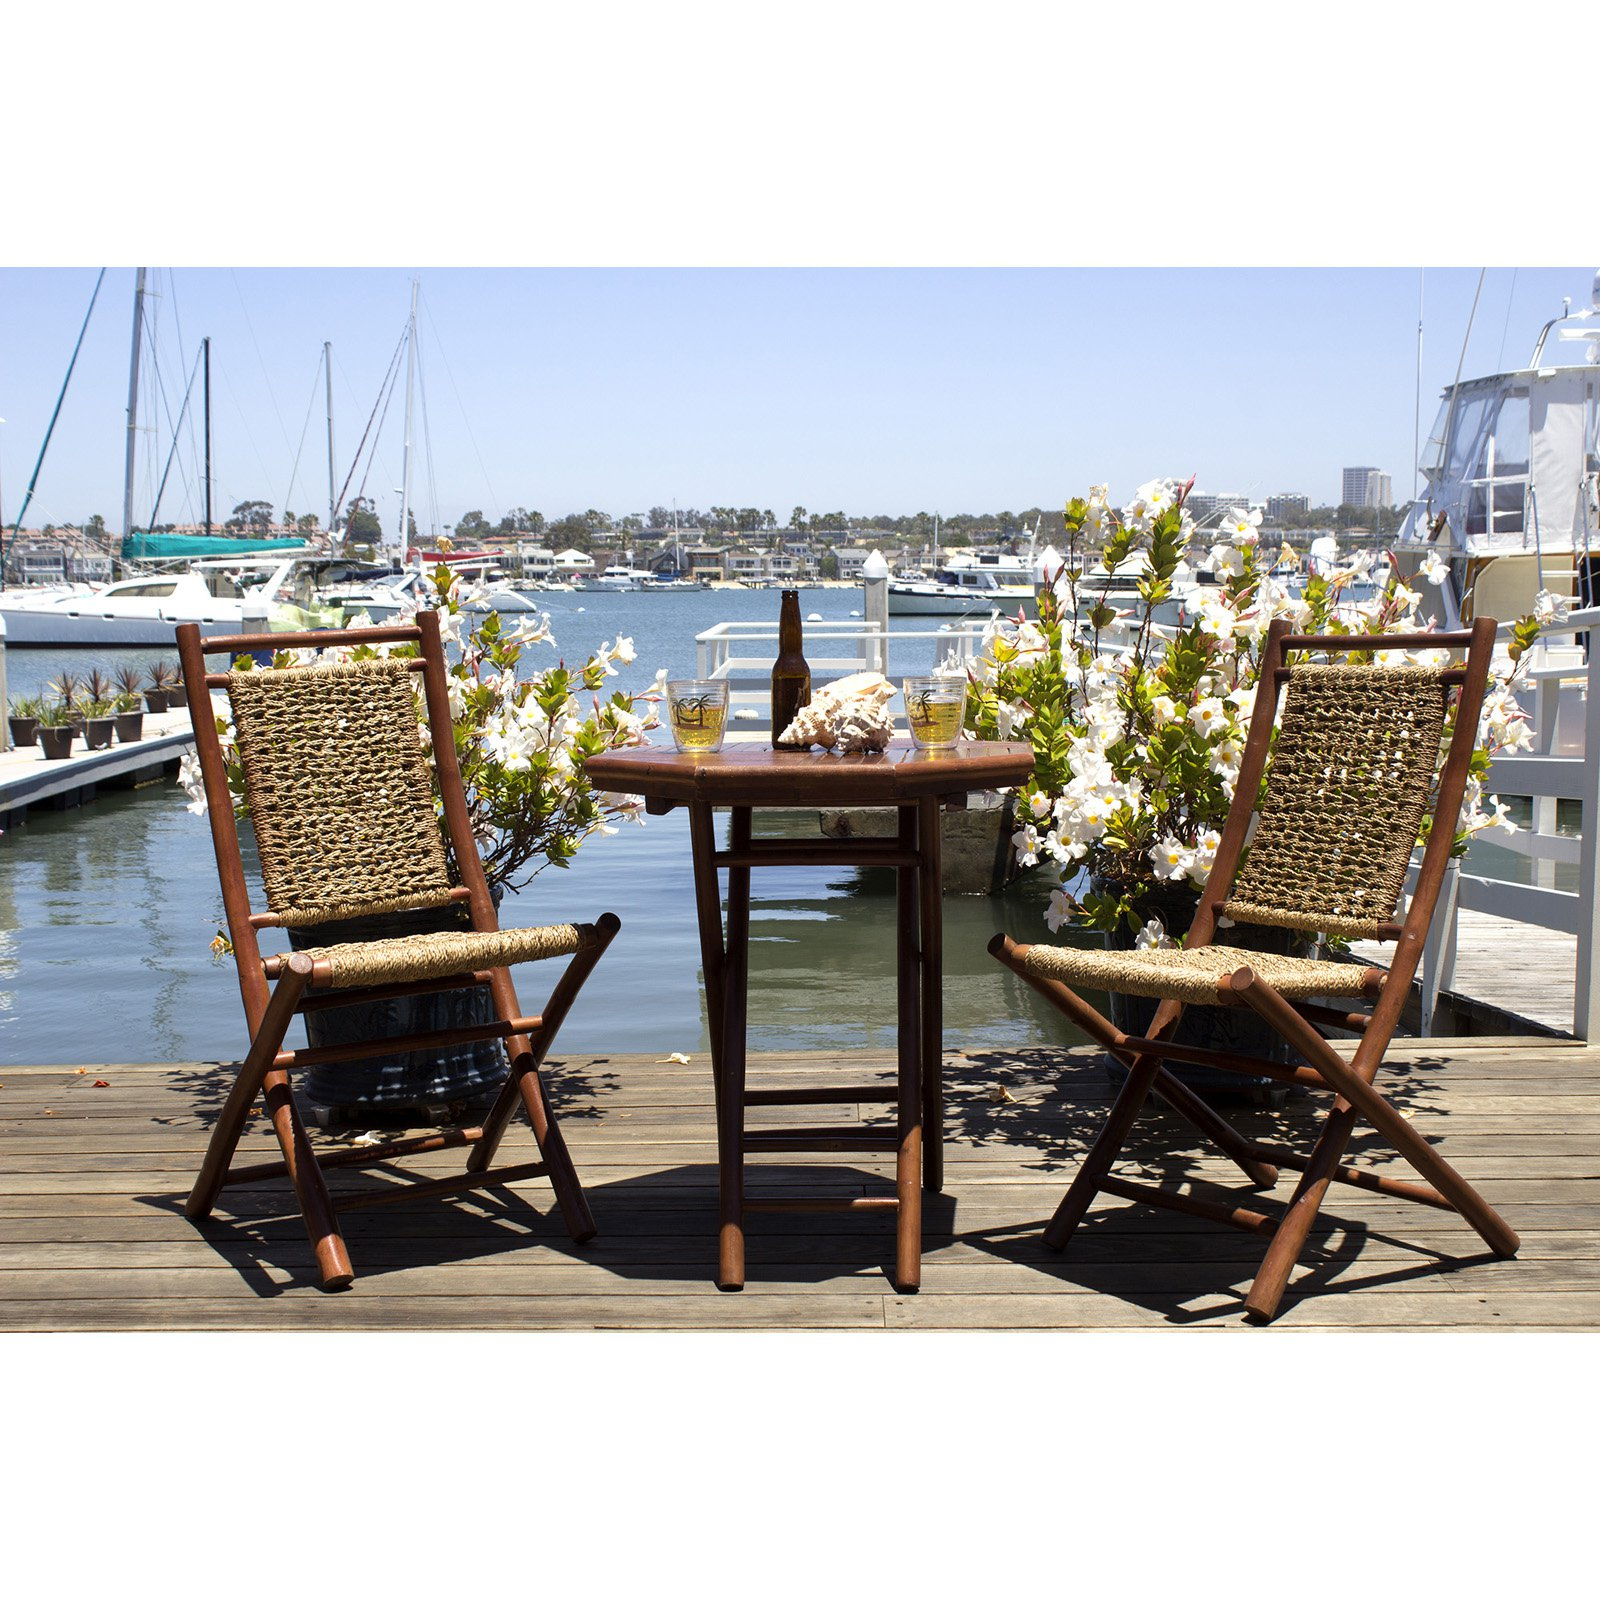 Heather Ann Creations Maui Bamboo Bistro Set